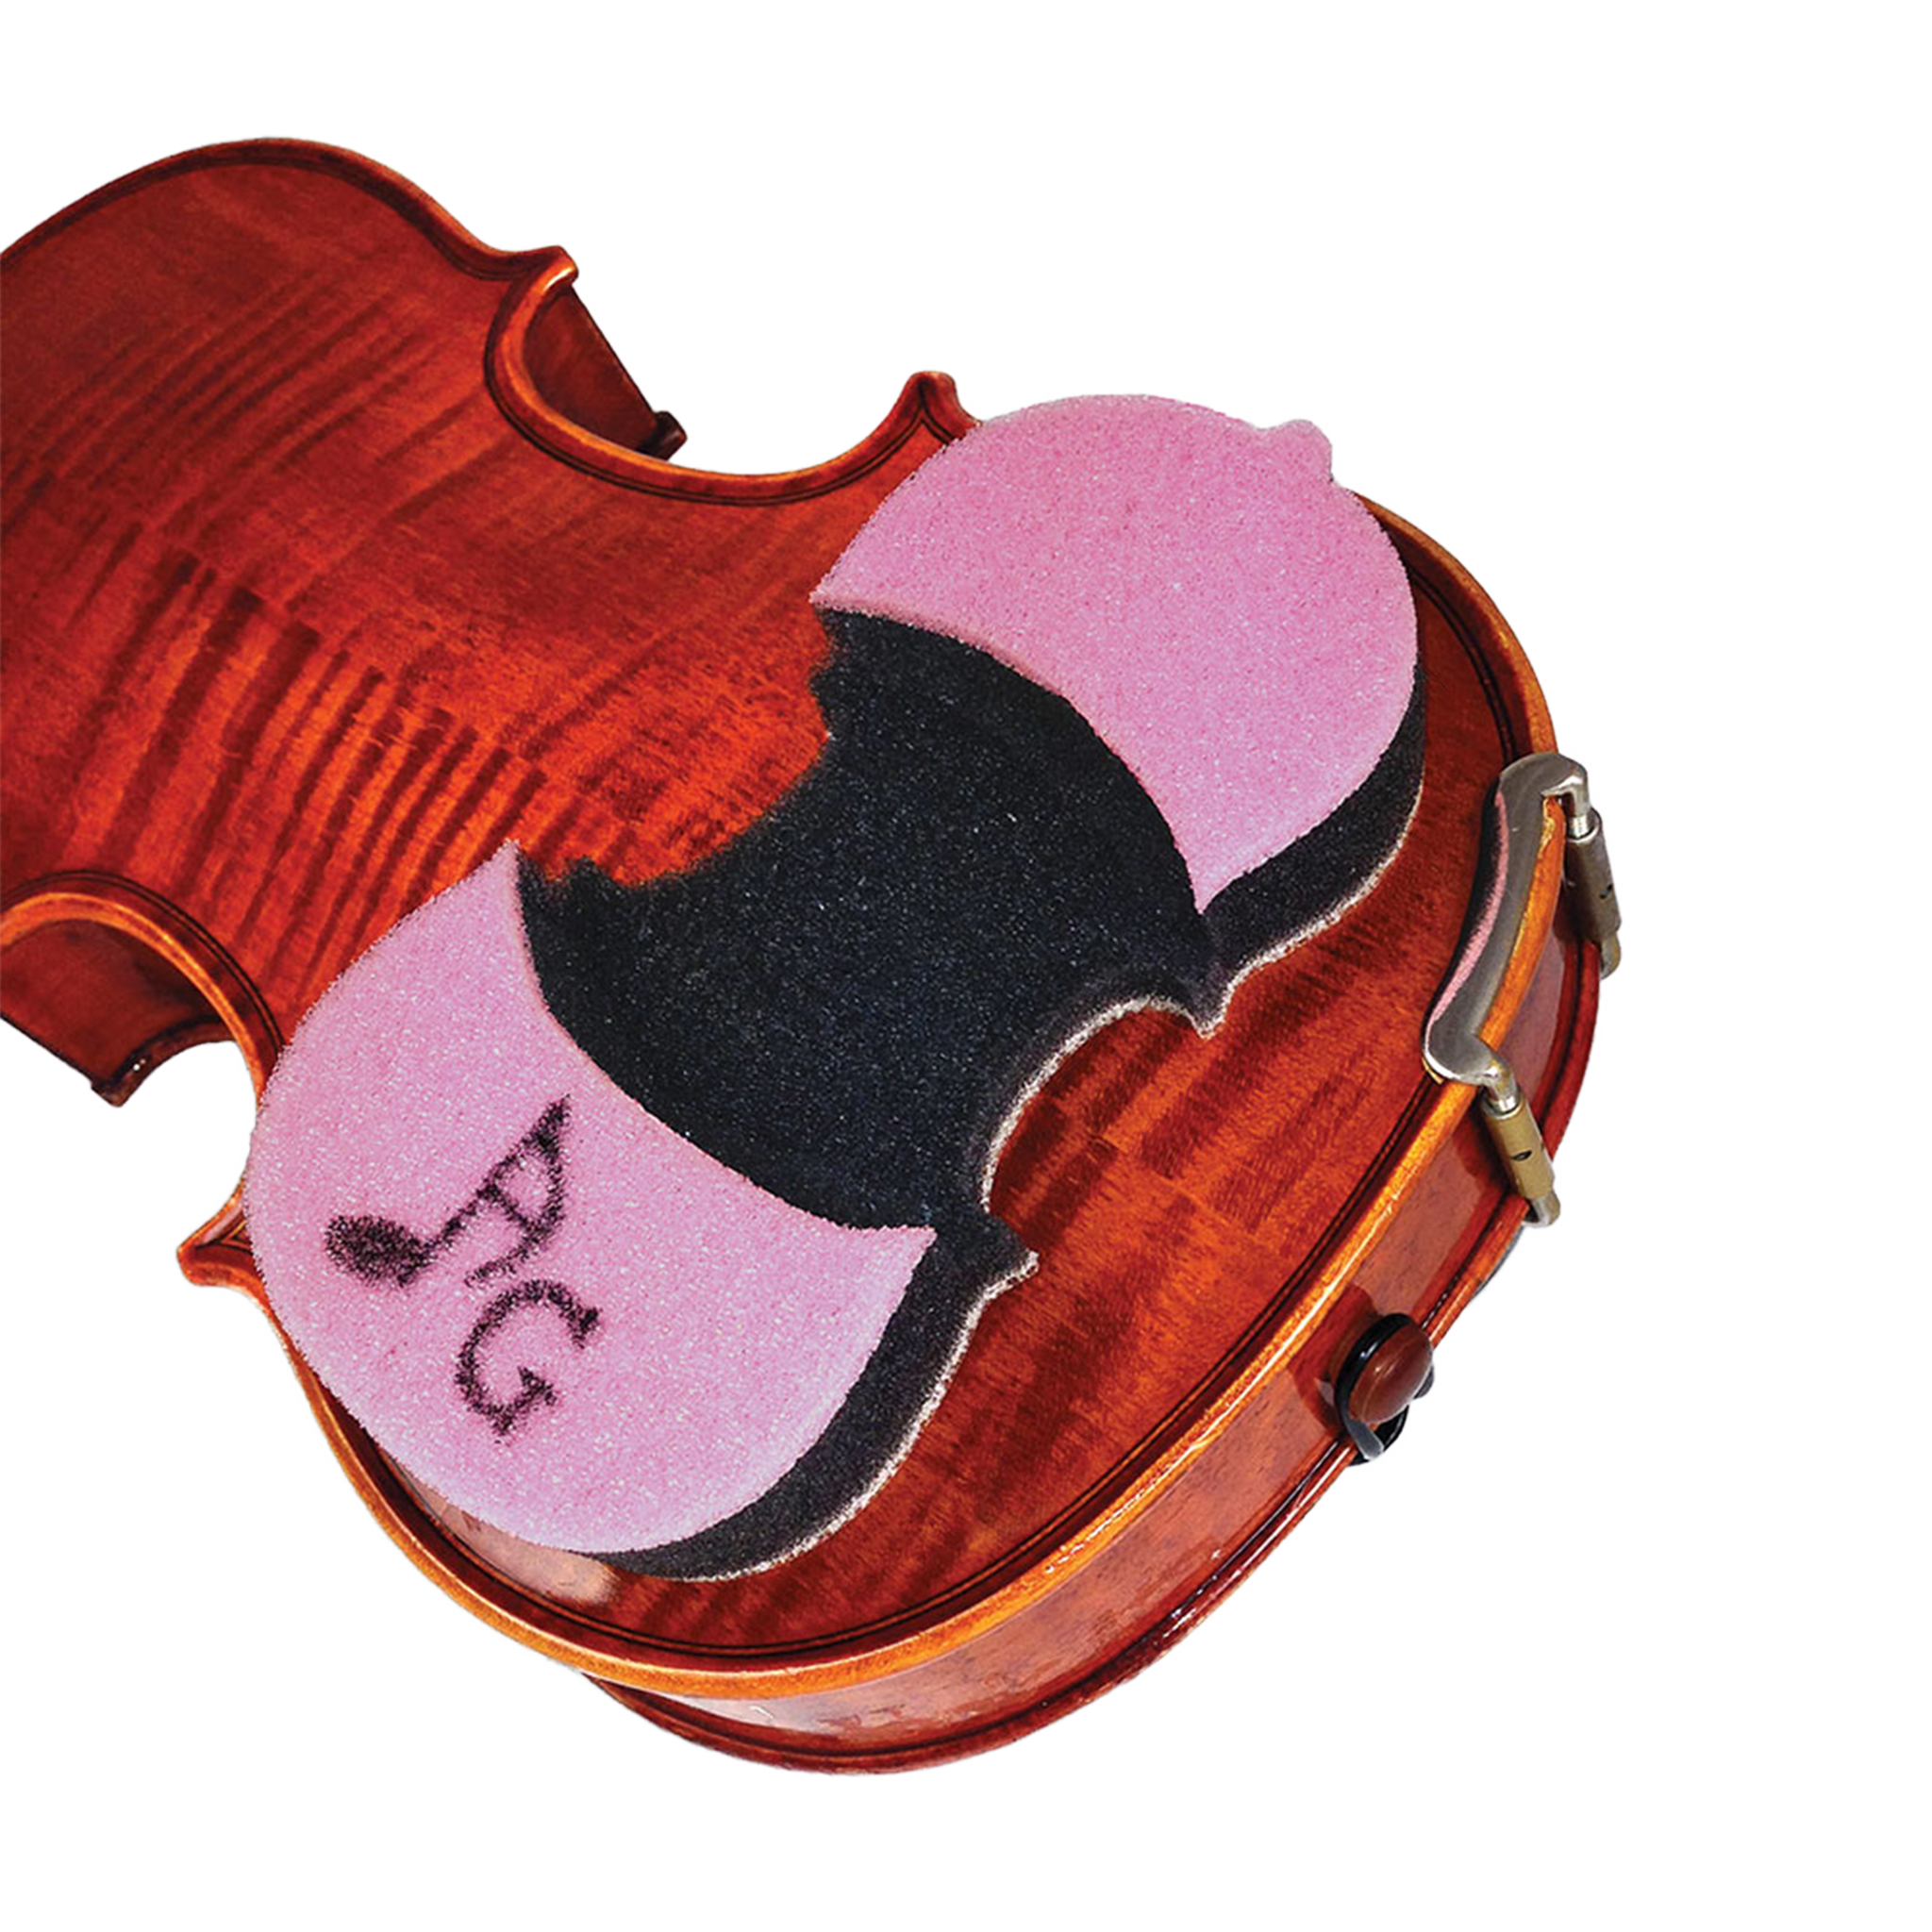 Prodigy Pink Violin & Viola Shoulder Rest